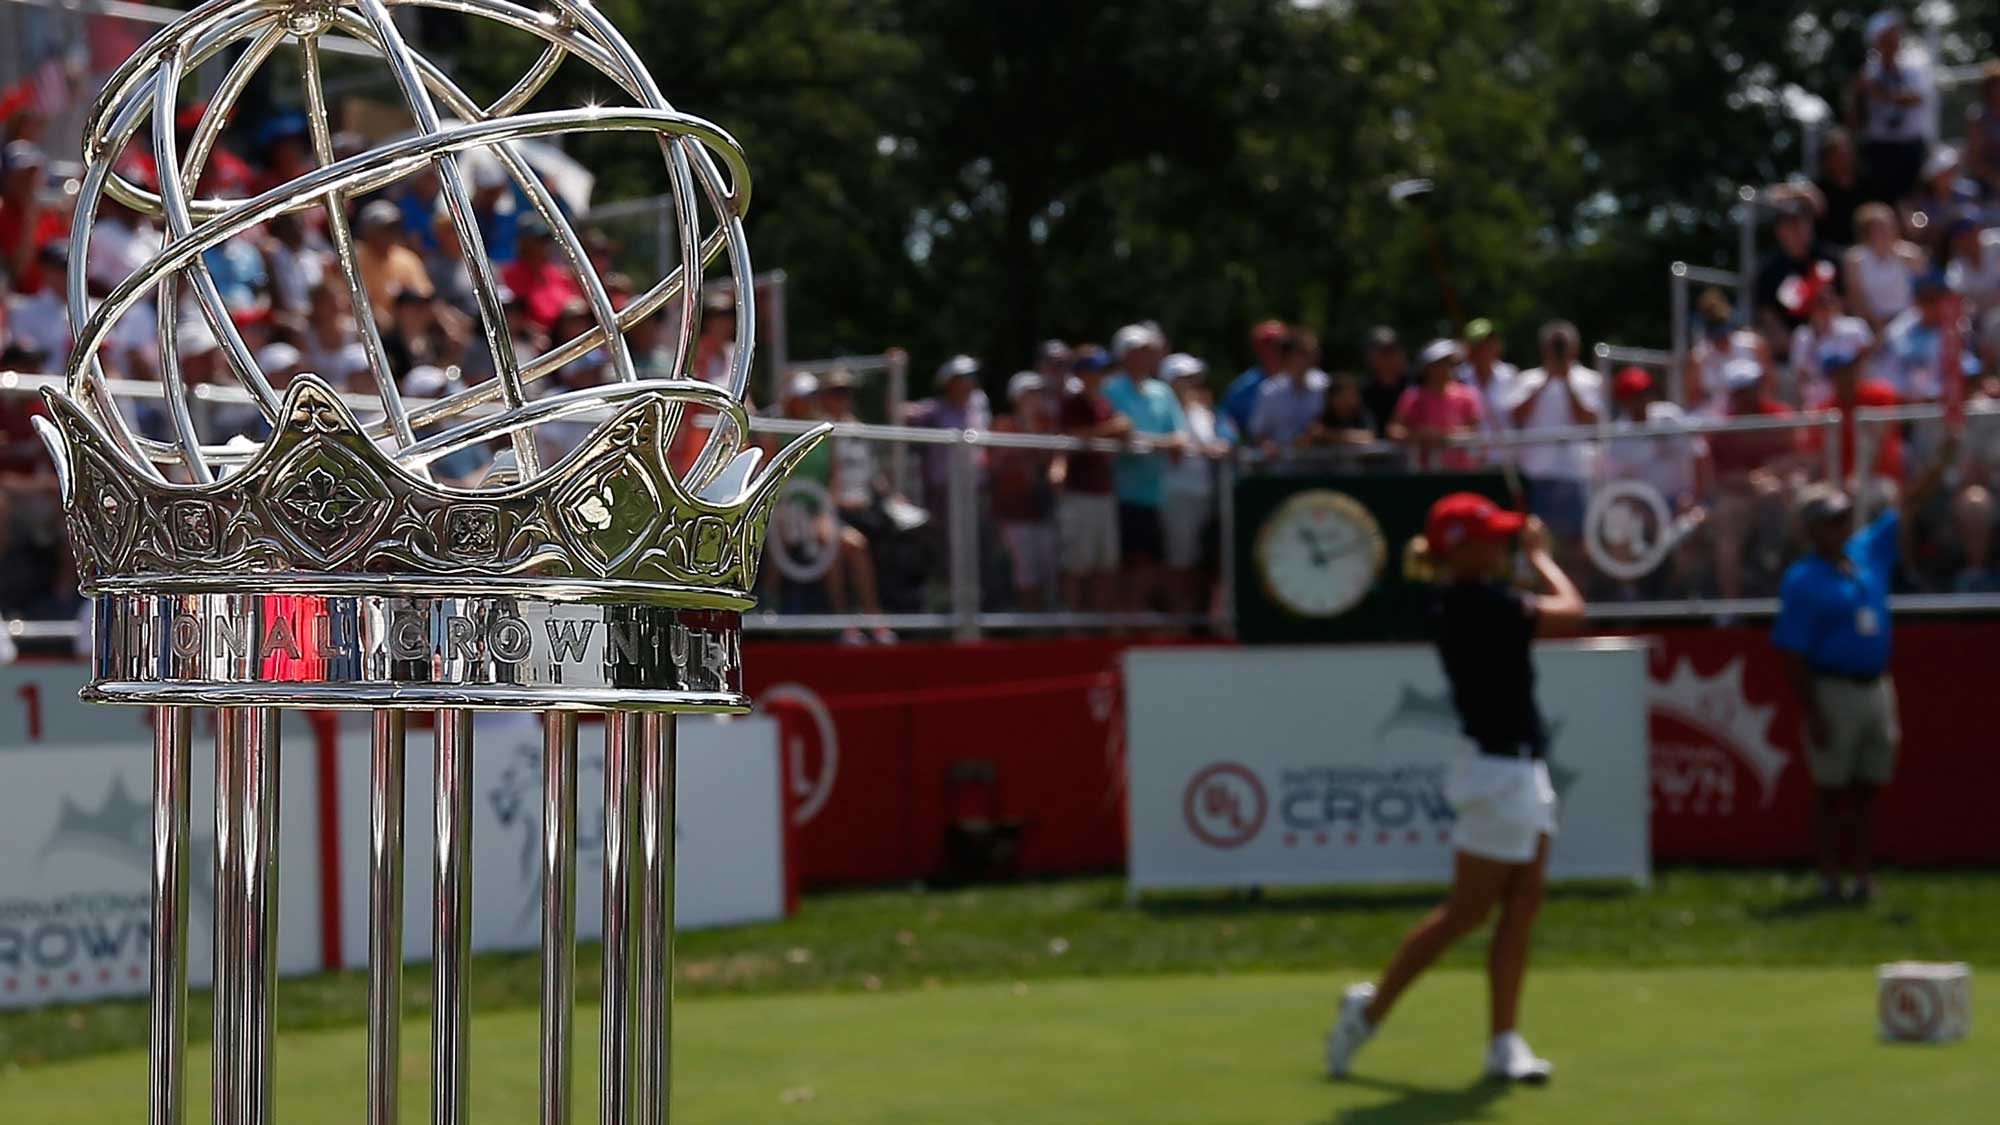 A detailed view of the championship trophy as Stacy Lewis of the United States hits her tee shot on the first hole during the singles matches of the 2016 UL International Crown